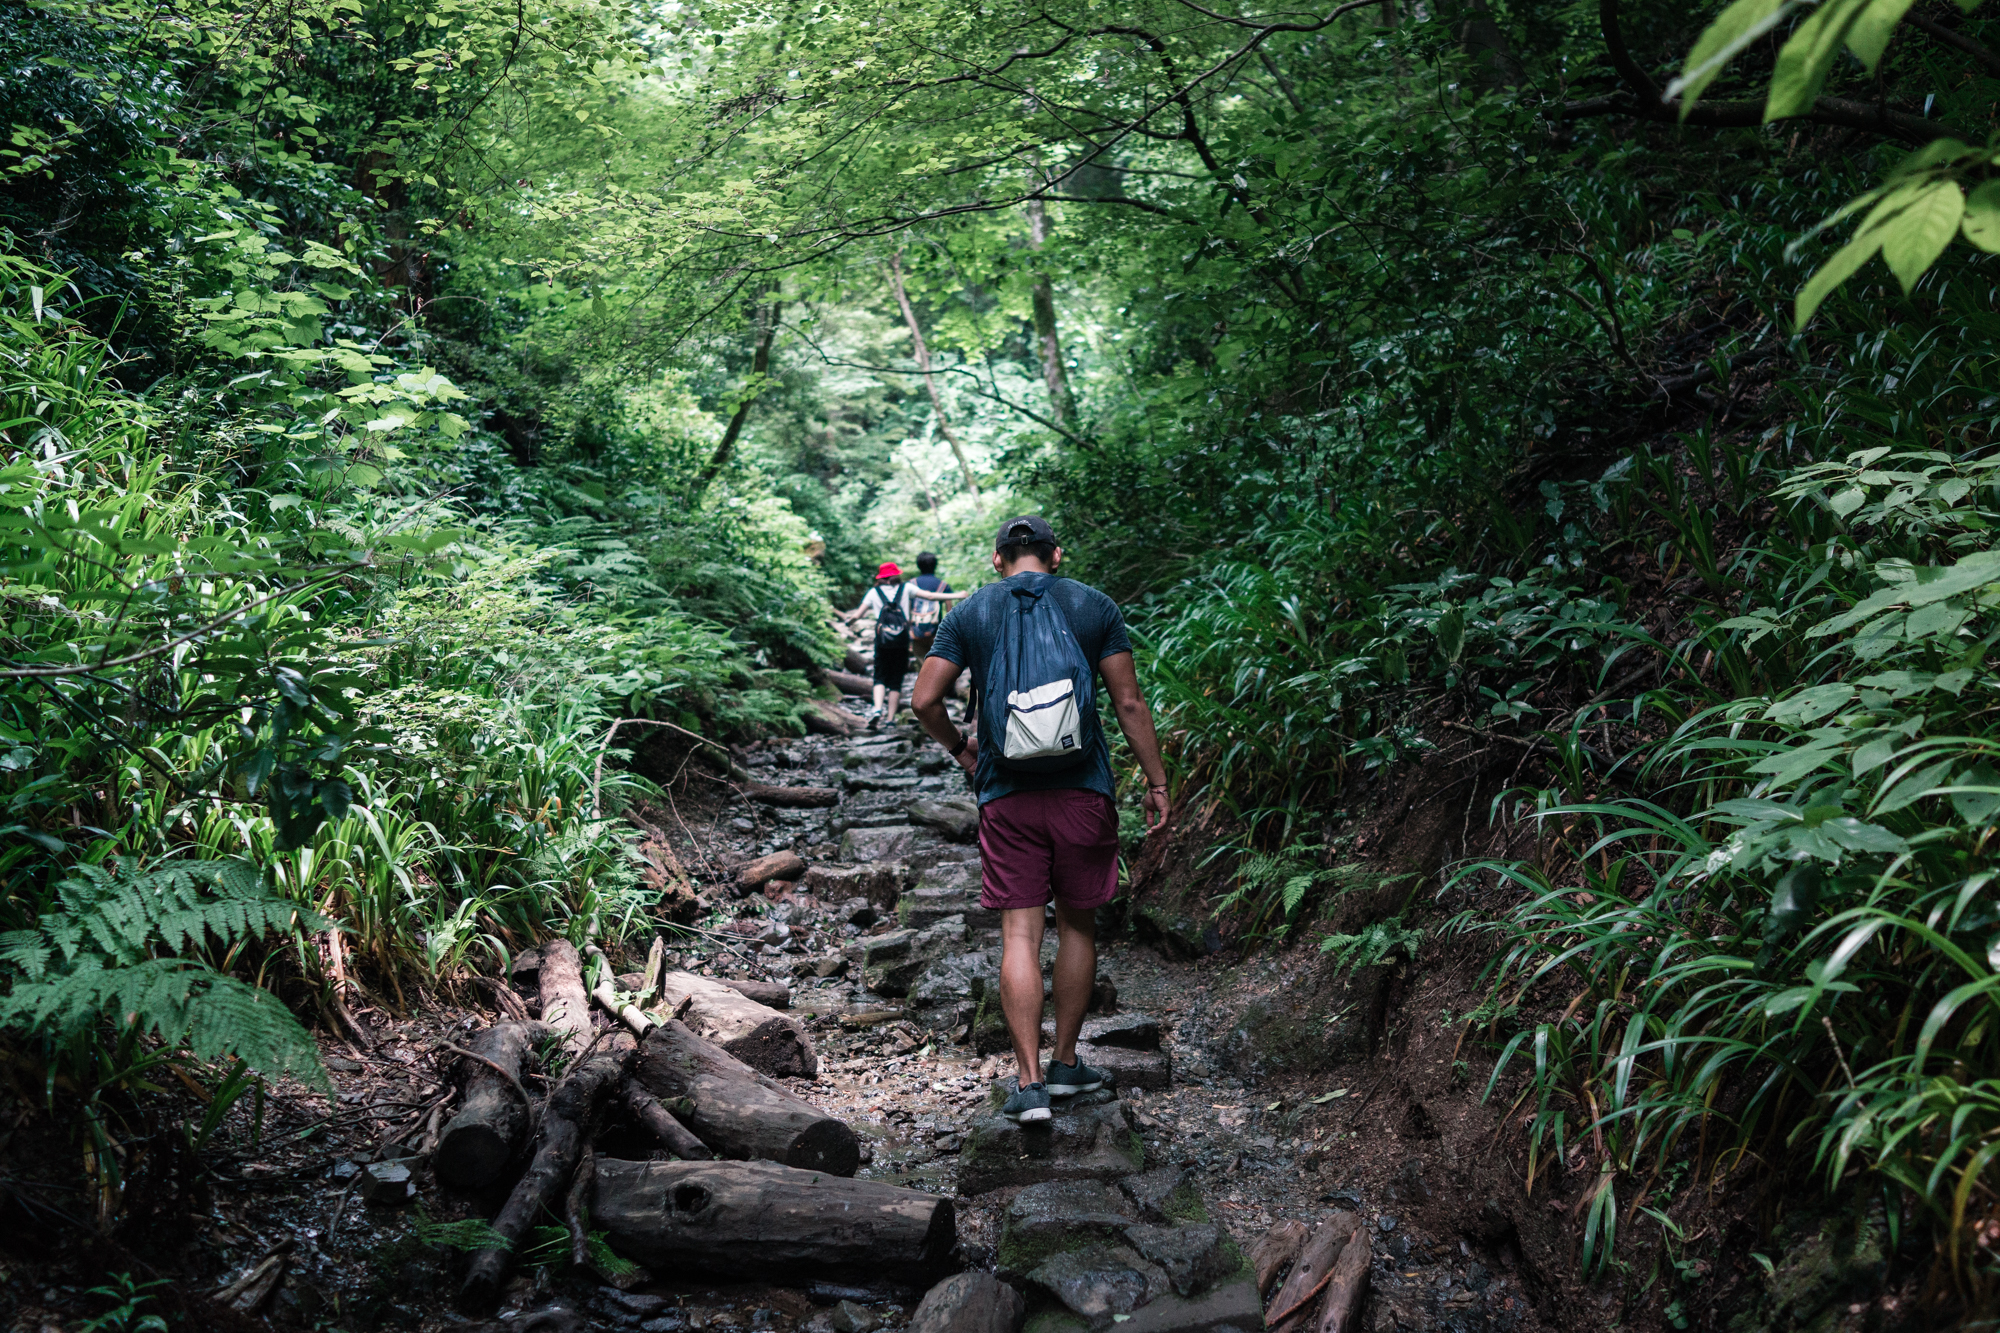 Creek of Mt. Takao